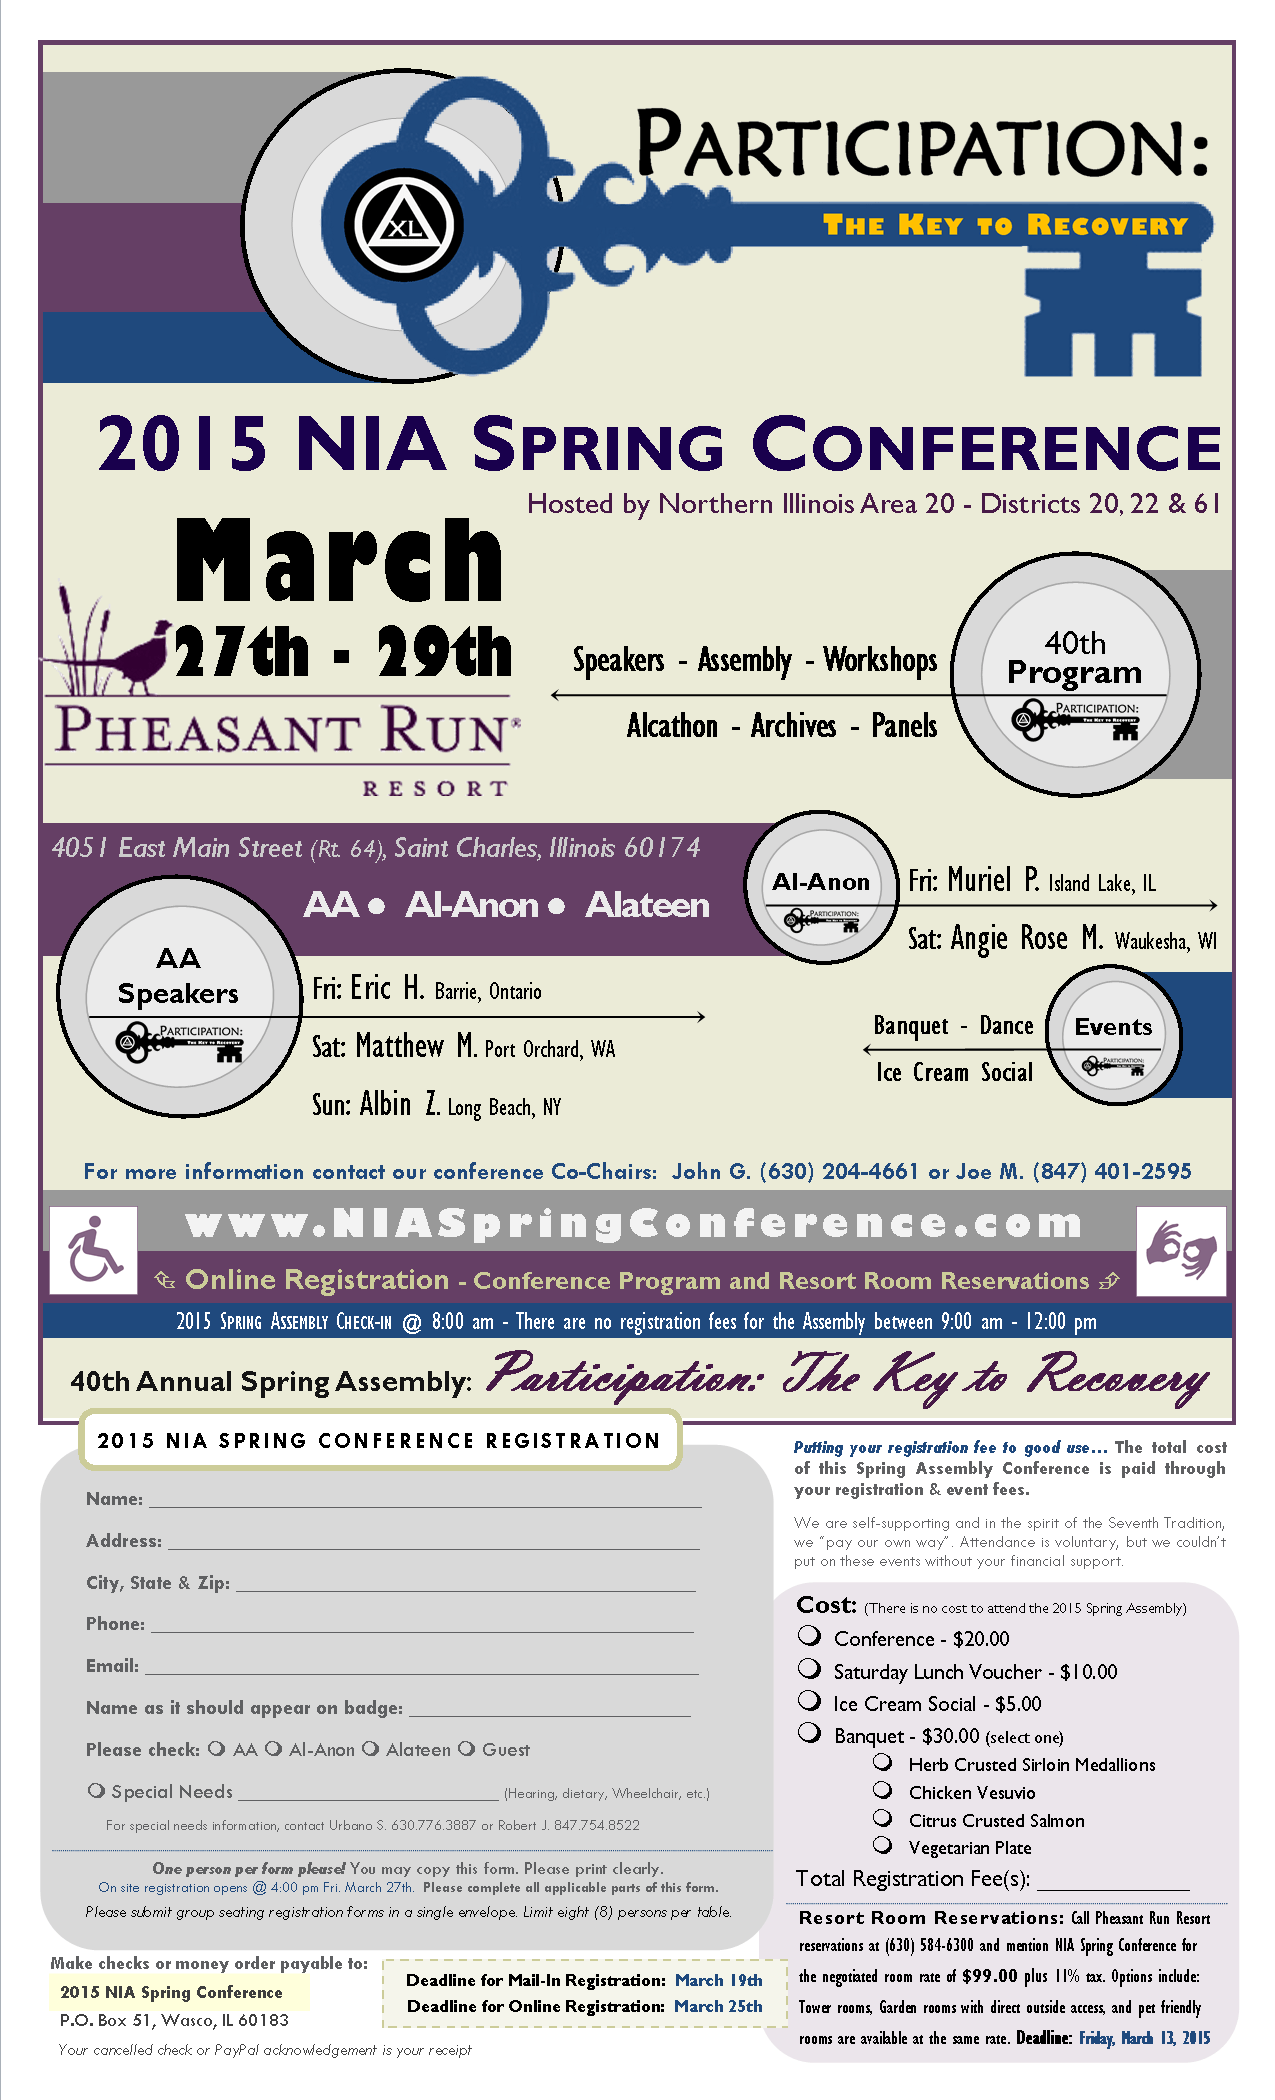 2015 NIA Spring Conference - Perception: The Key to Recovery 1